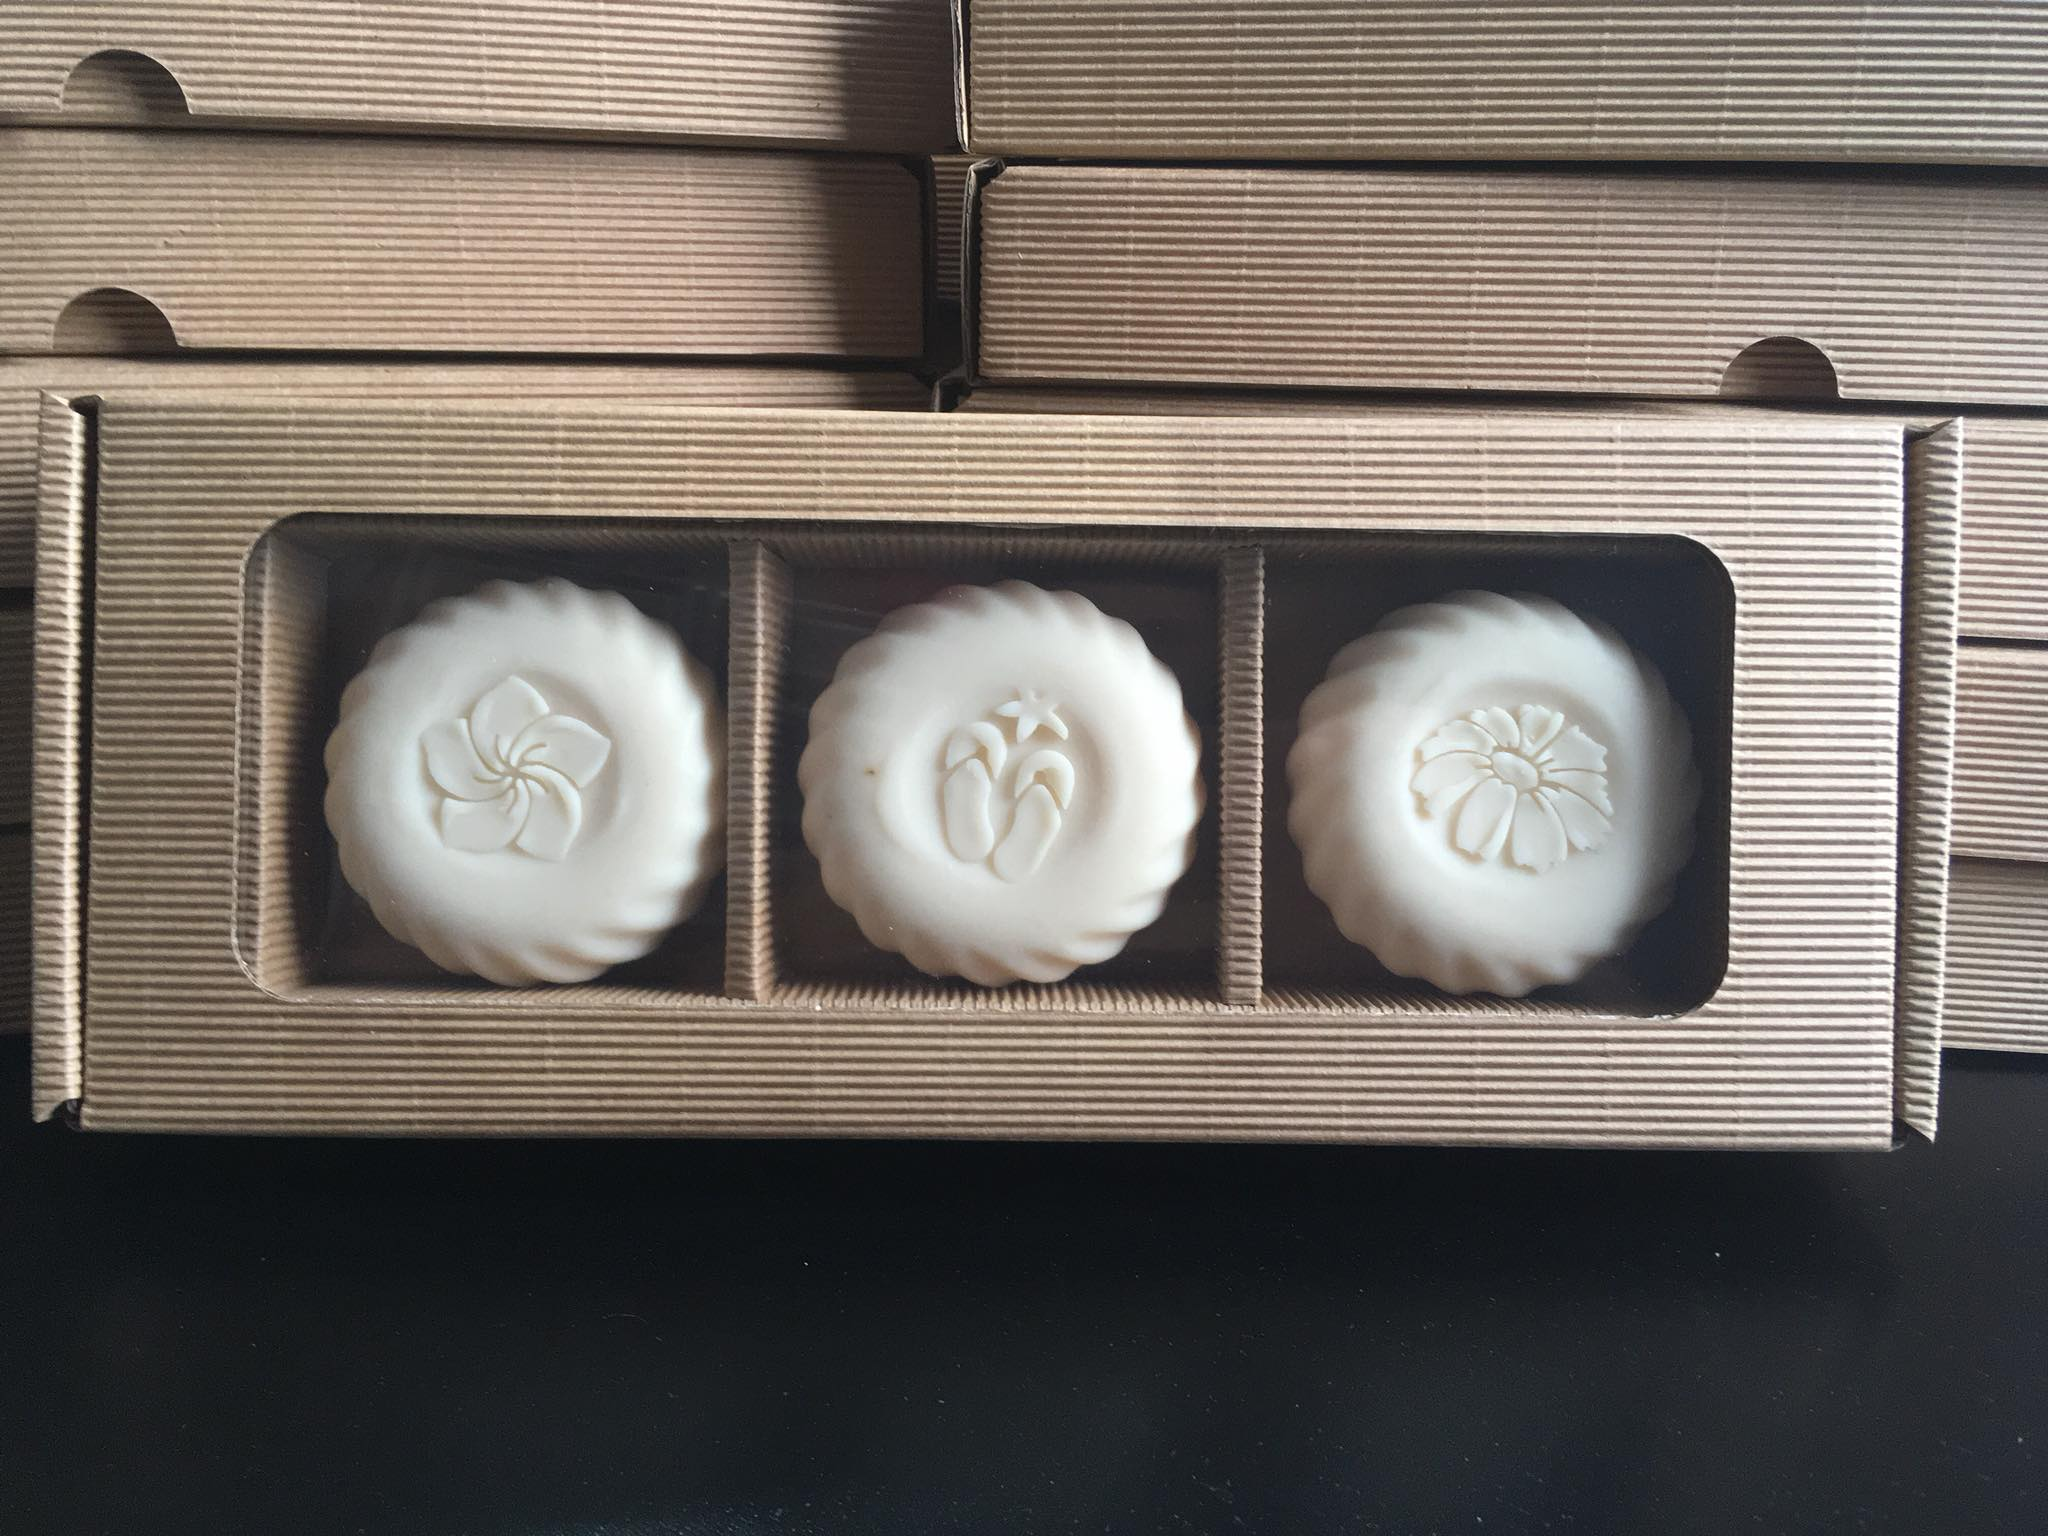 3 cavities soap packaging box 7